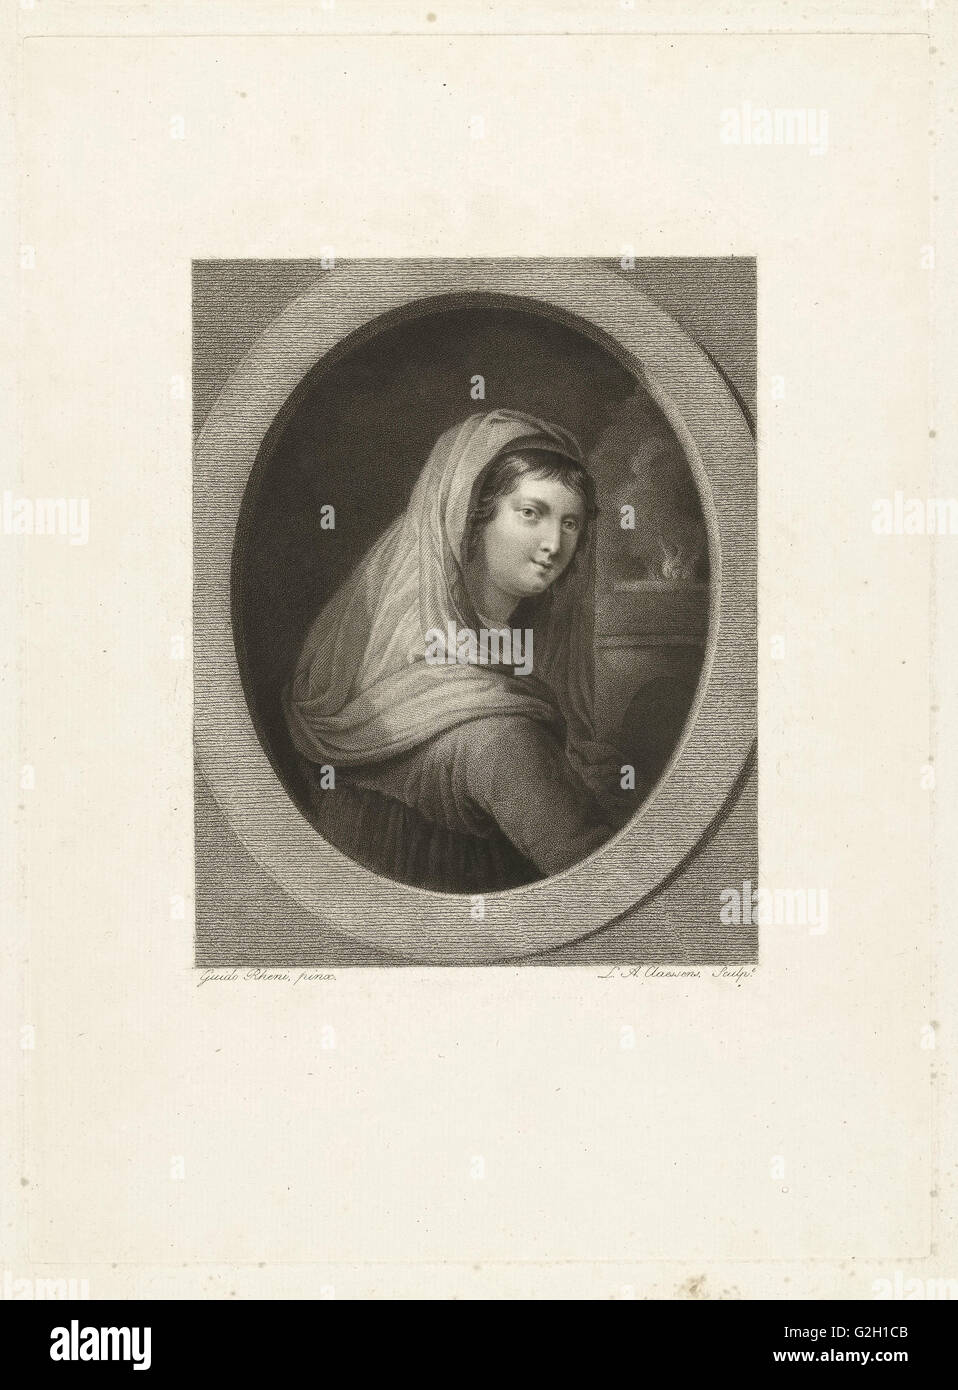 Young woman with veil, in the background a fire, Lambertus Antonius Claessens, c. 1829 - c. 1834 - Stock Image